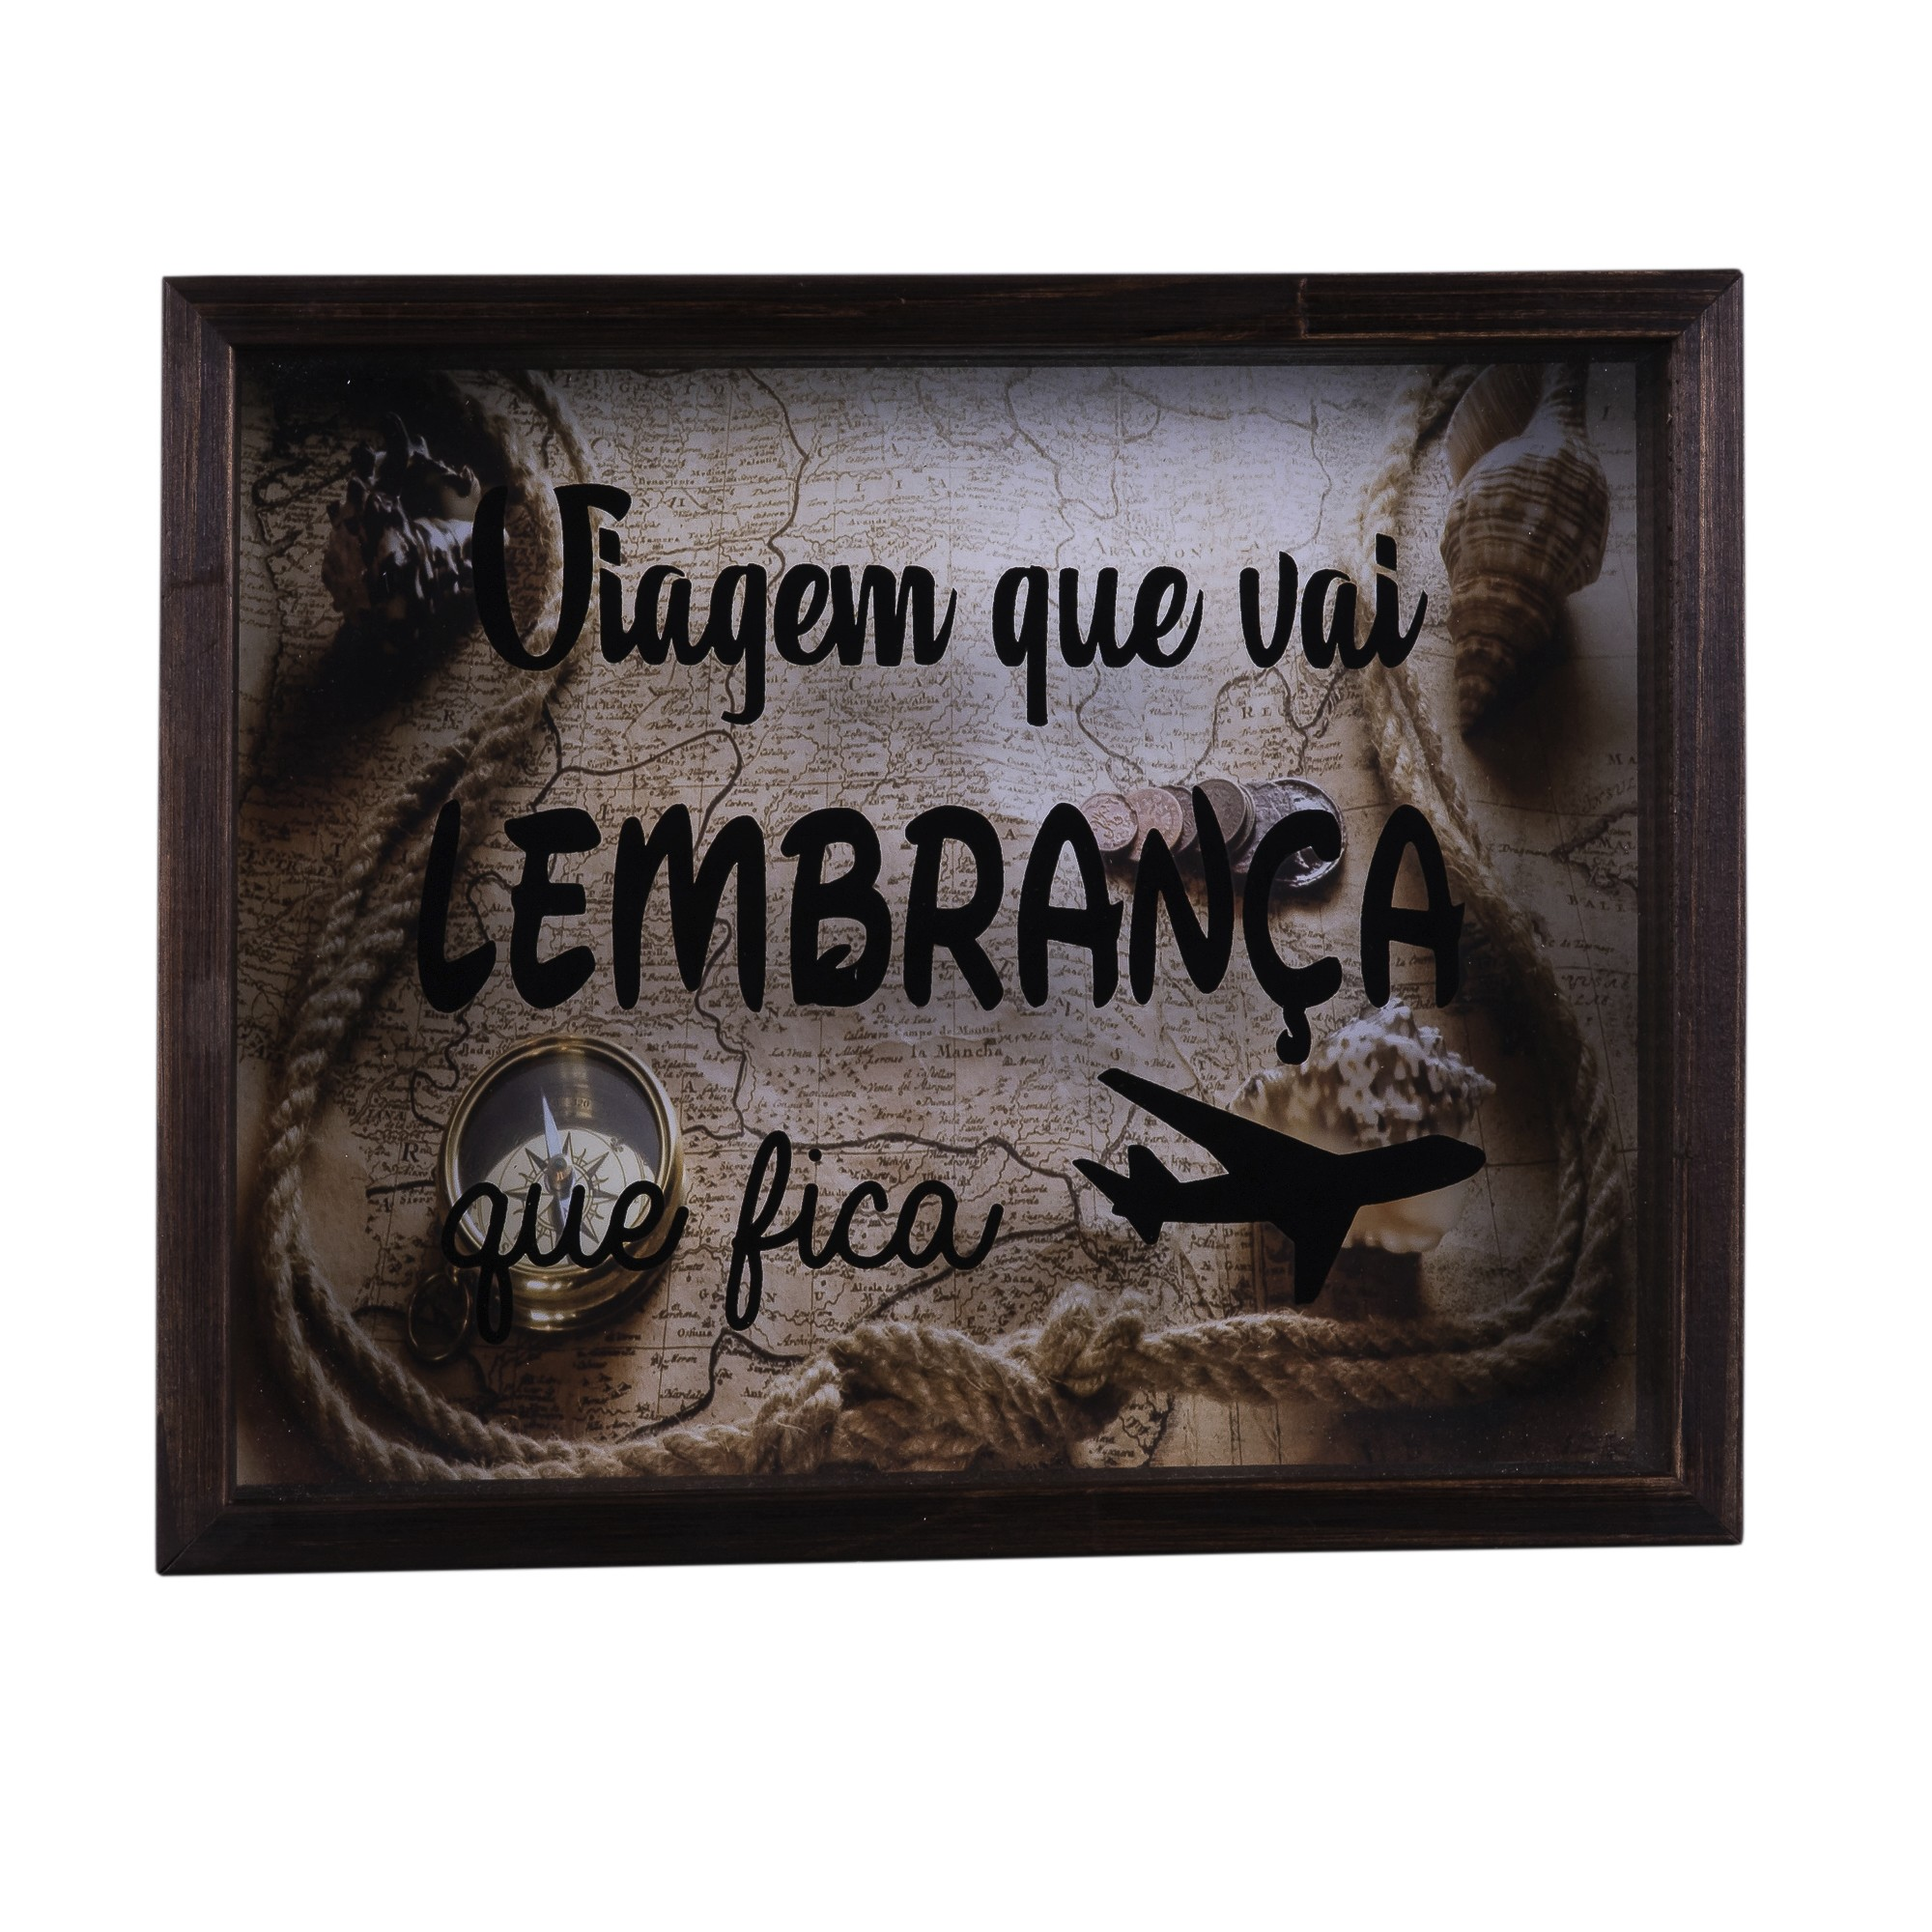 Quadro Decorativo 25x35 cm Porta-Ticket com Vidro 8024 - Art Frame